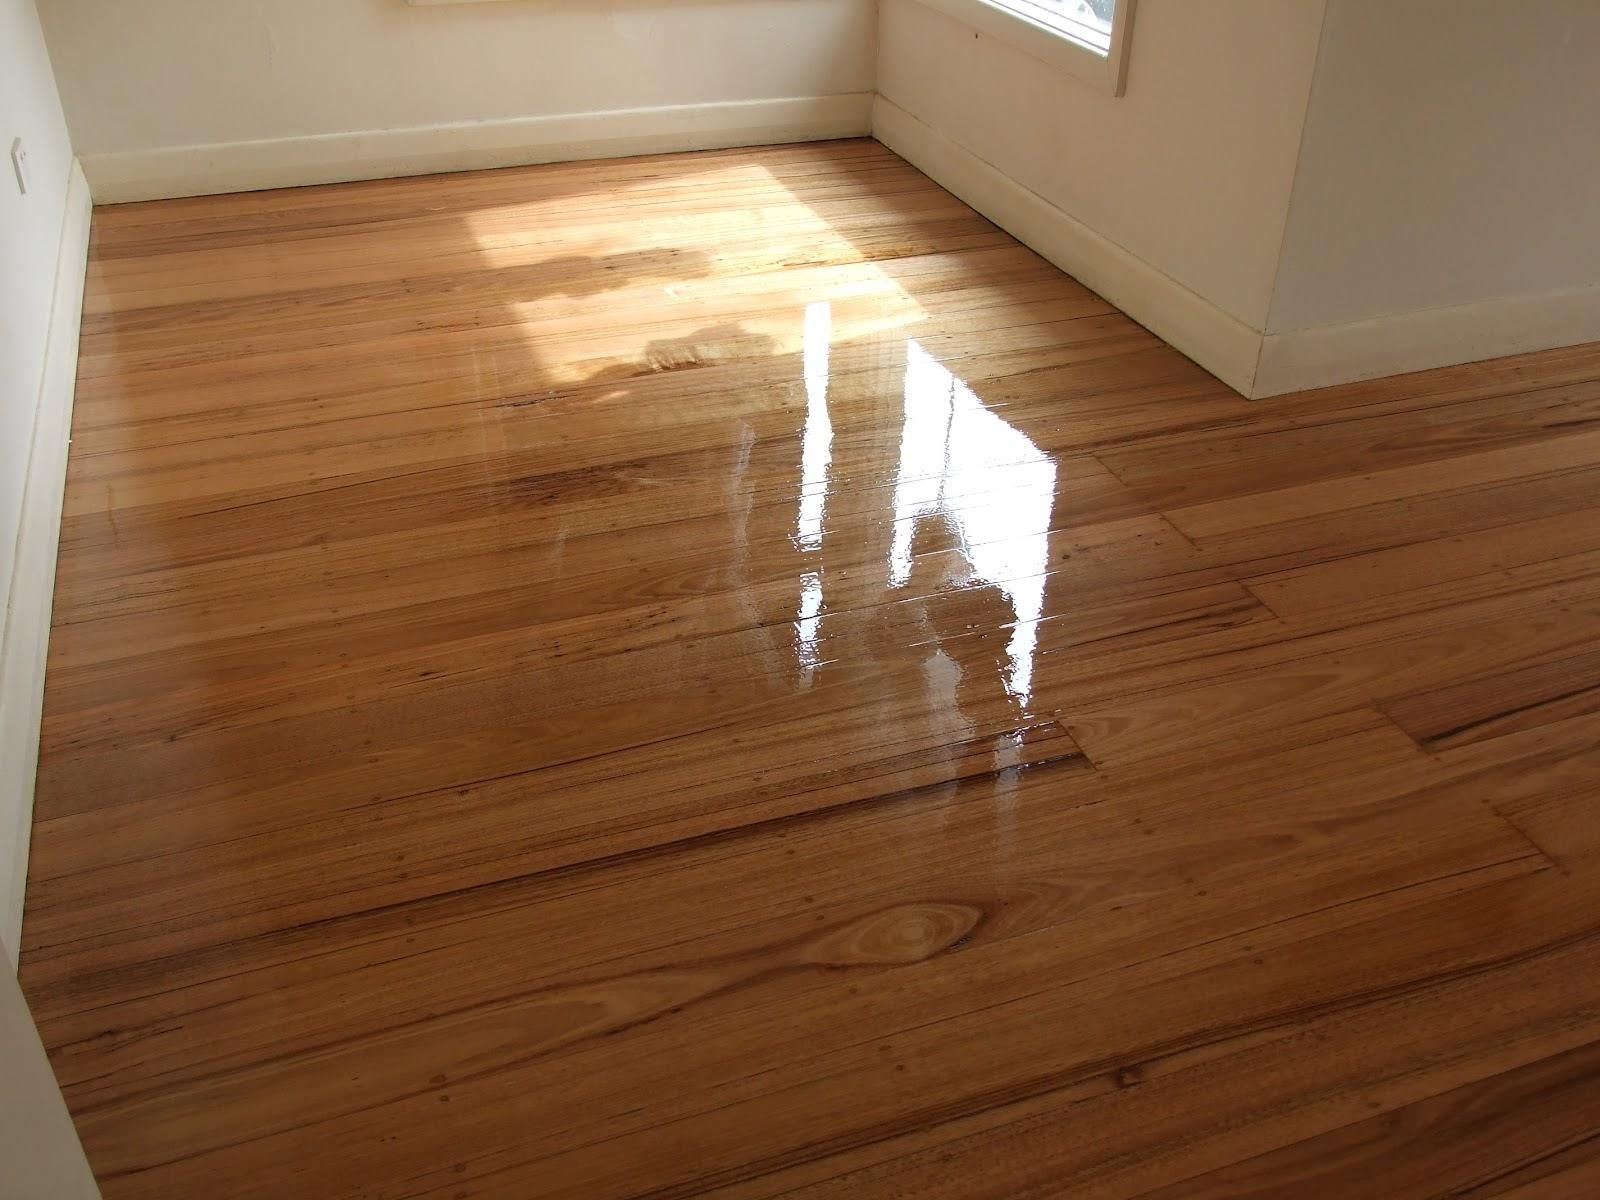 Matte Finish Vs Semi Gloss Hardwood Floors With Images Wood